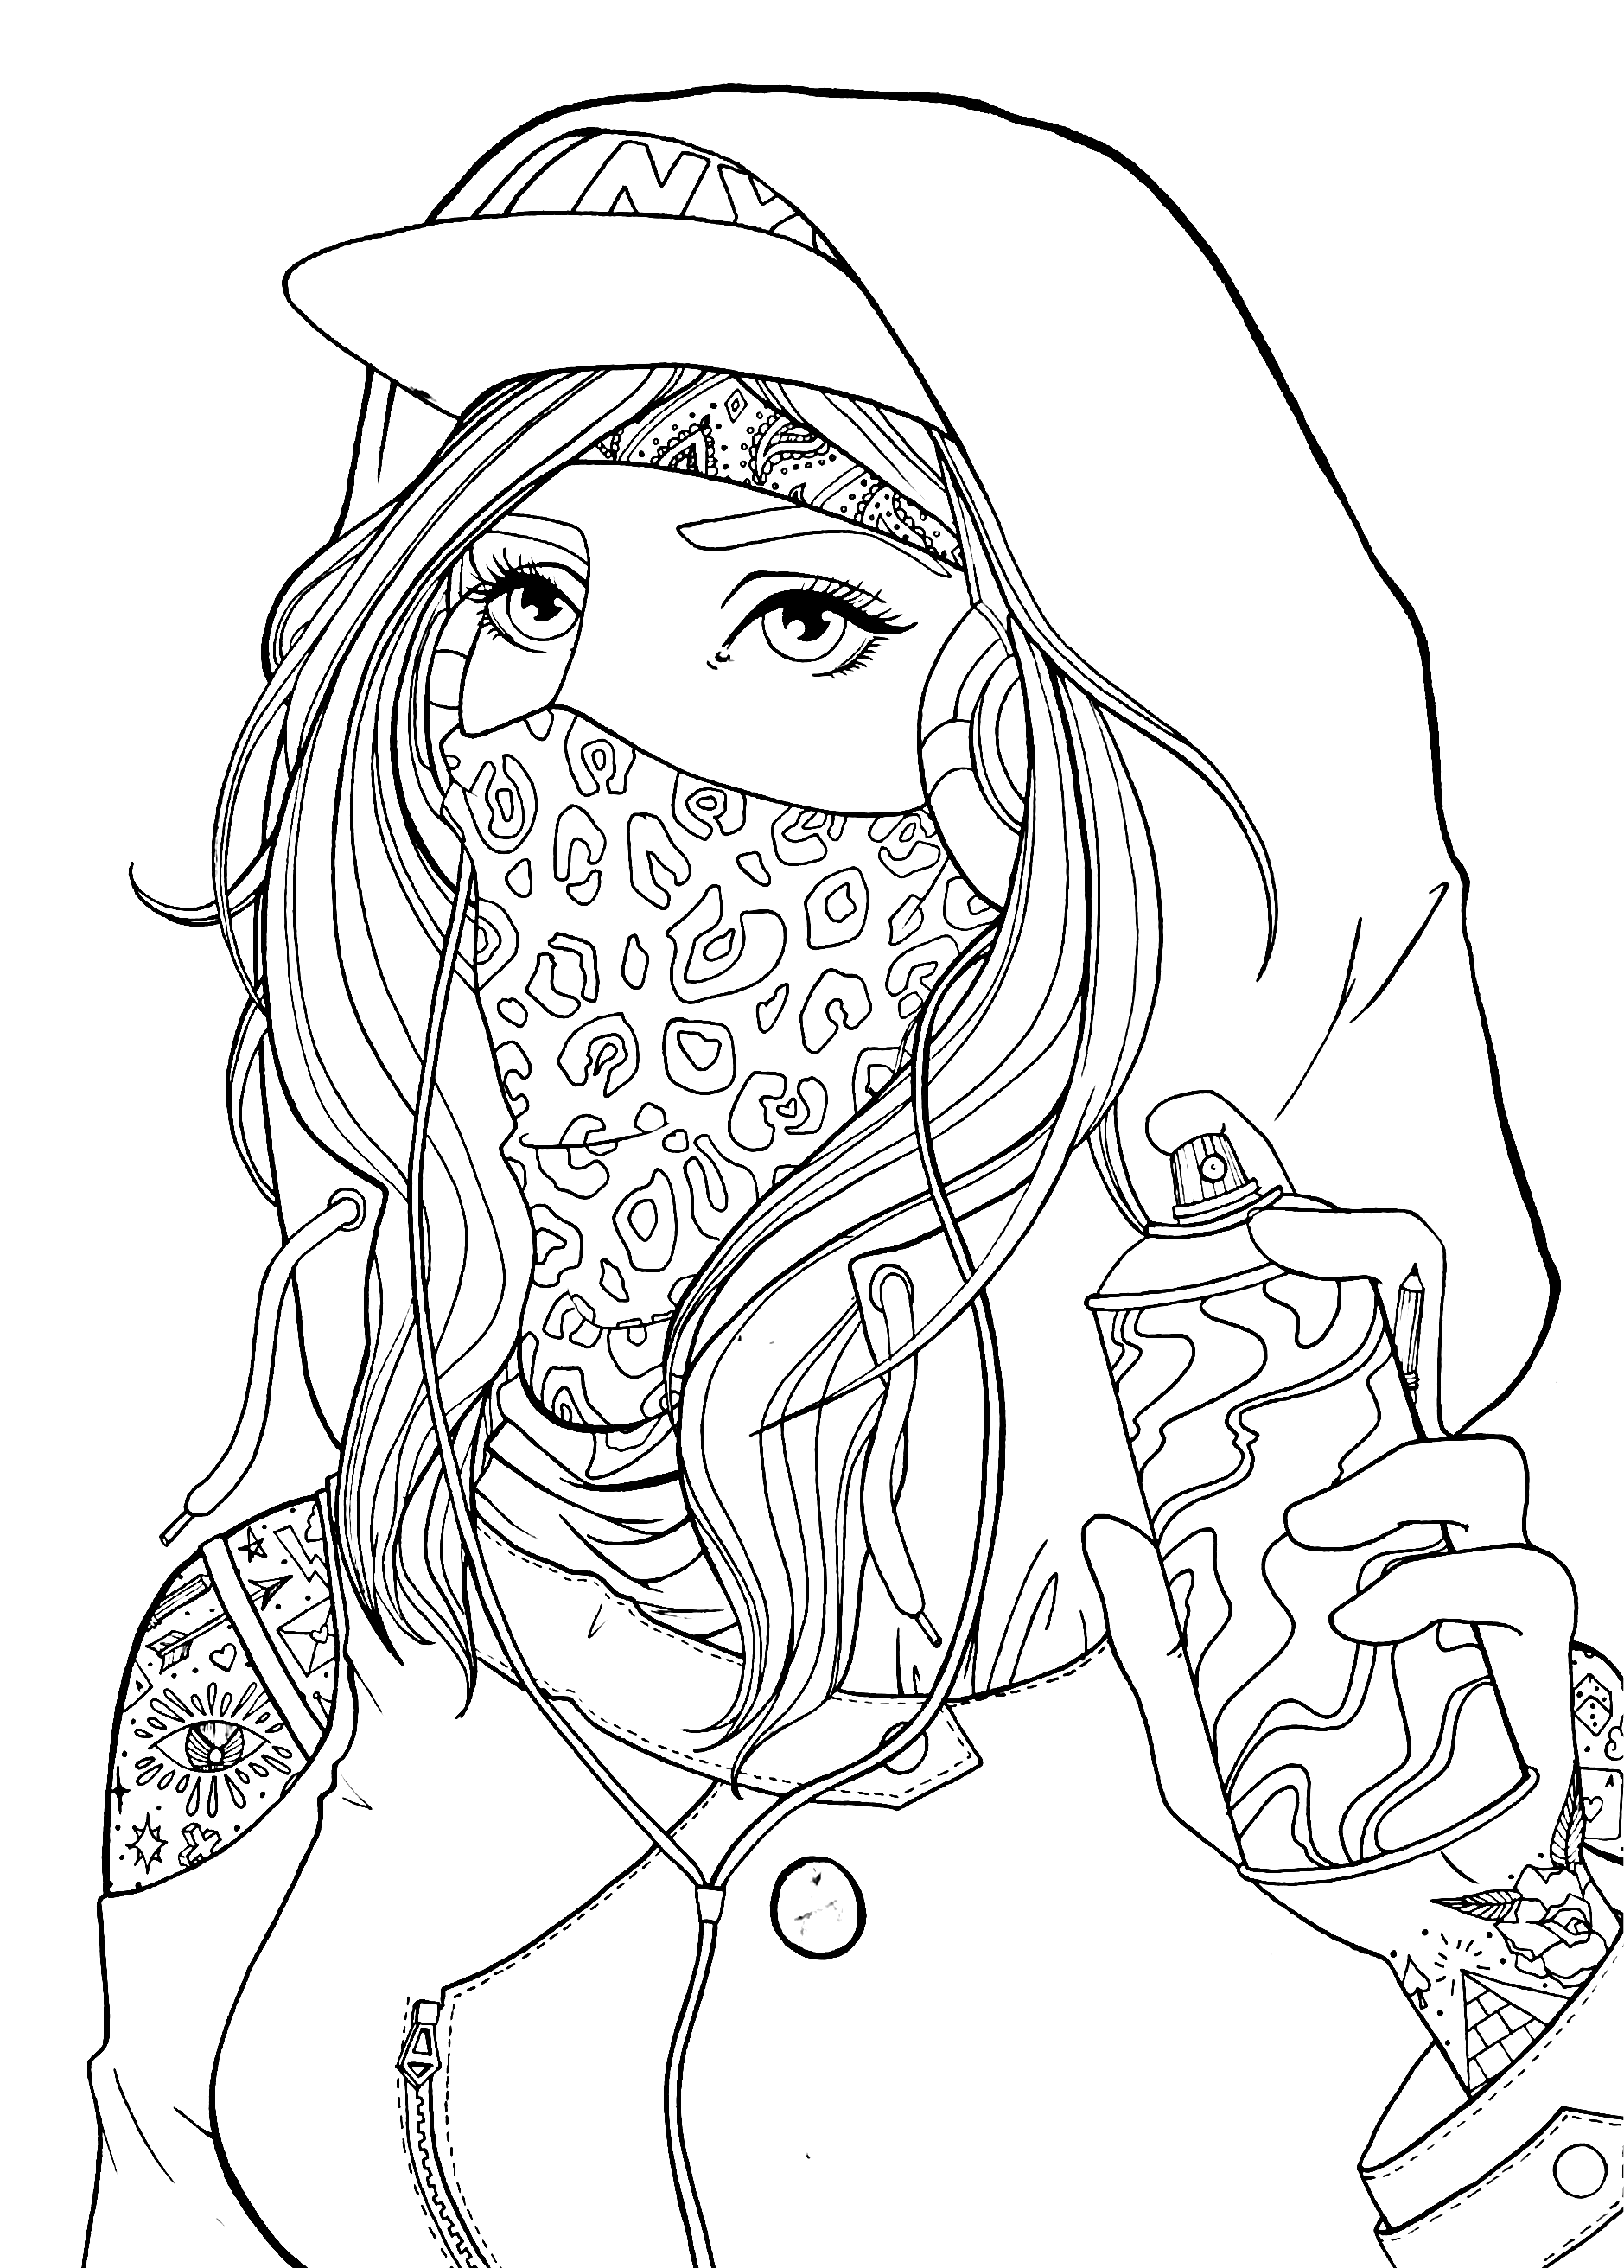 coloring pages of a girl graffiti girl drawing lineart coloring pages for a pages coloring girl of